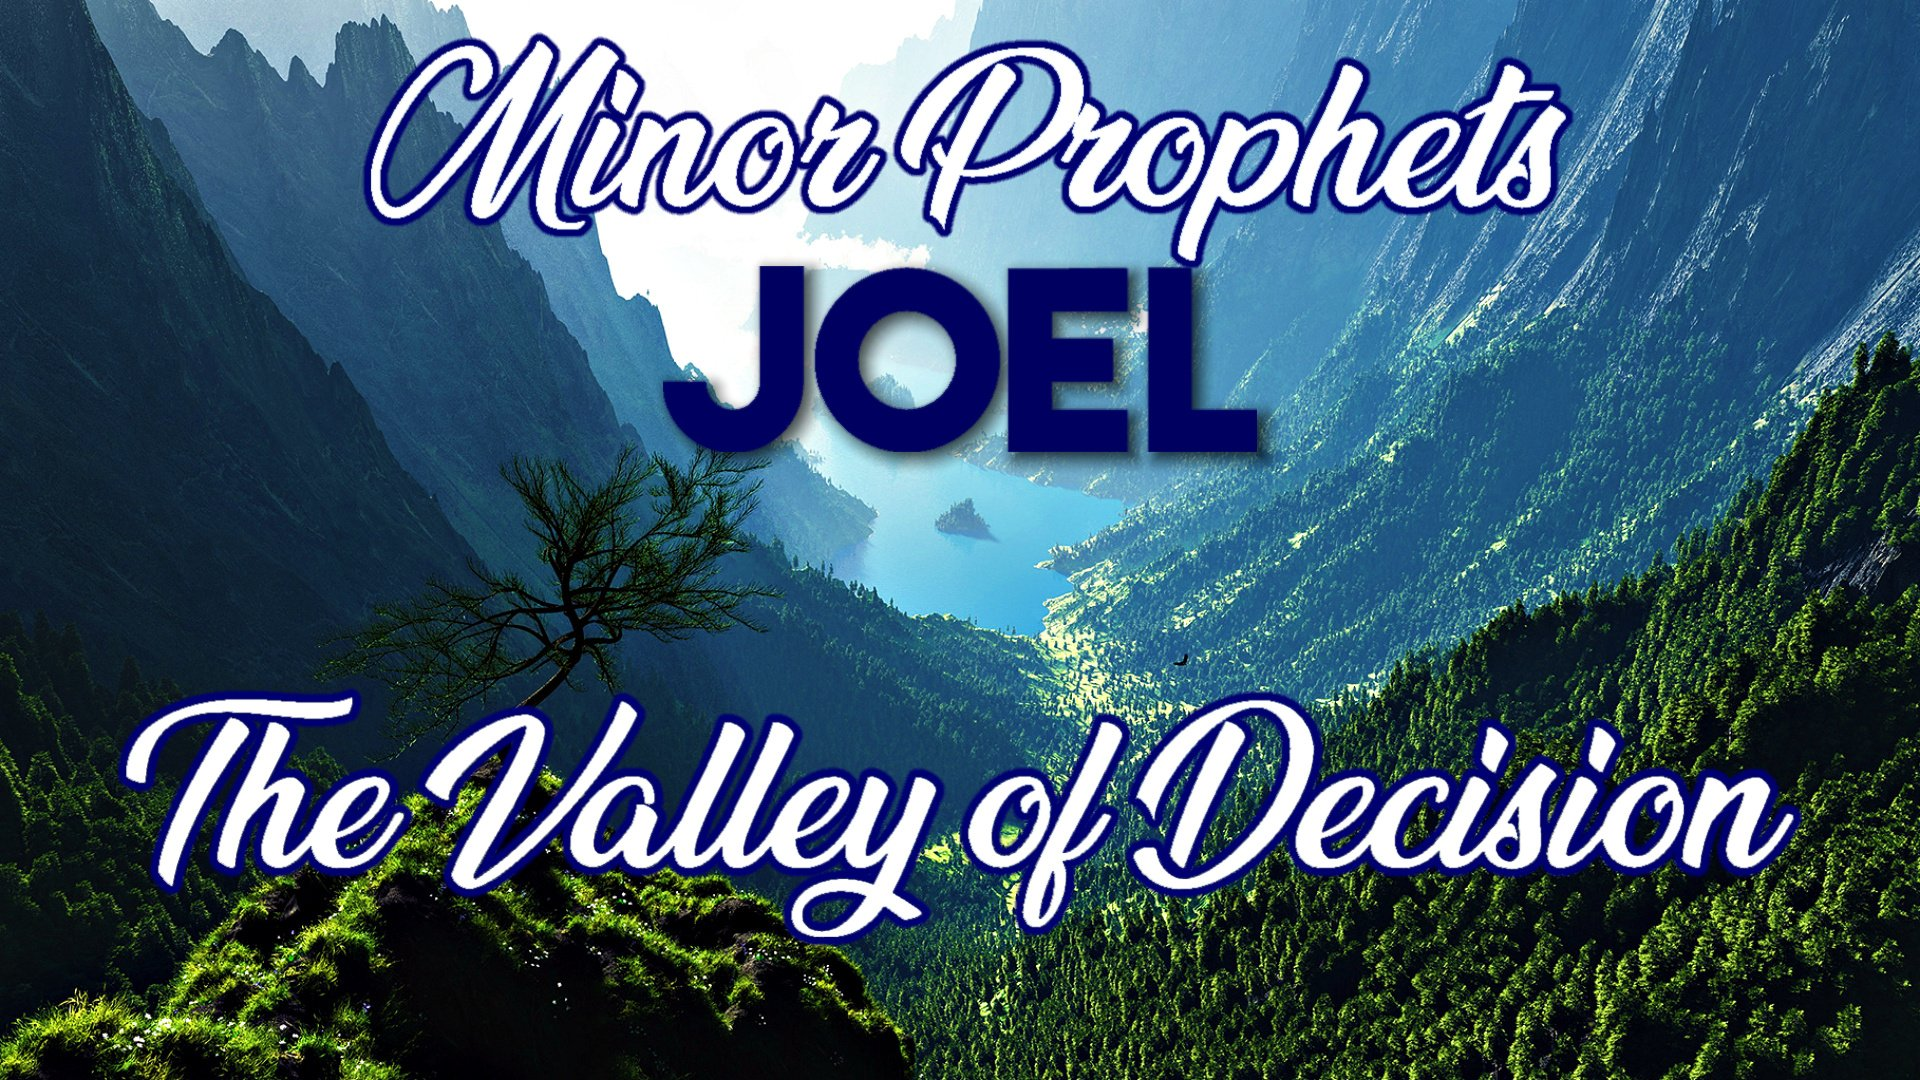 06 The Valley of Decision